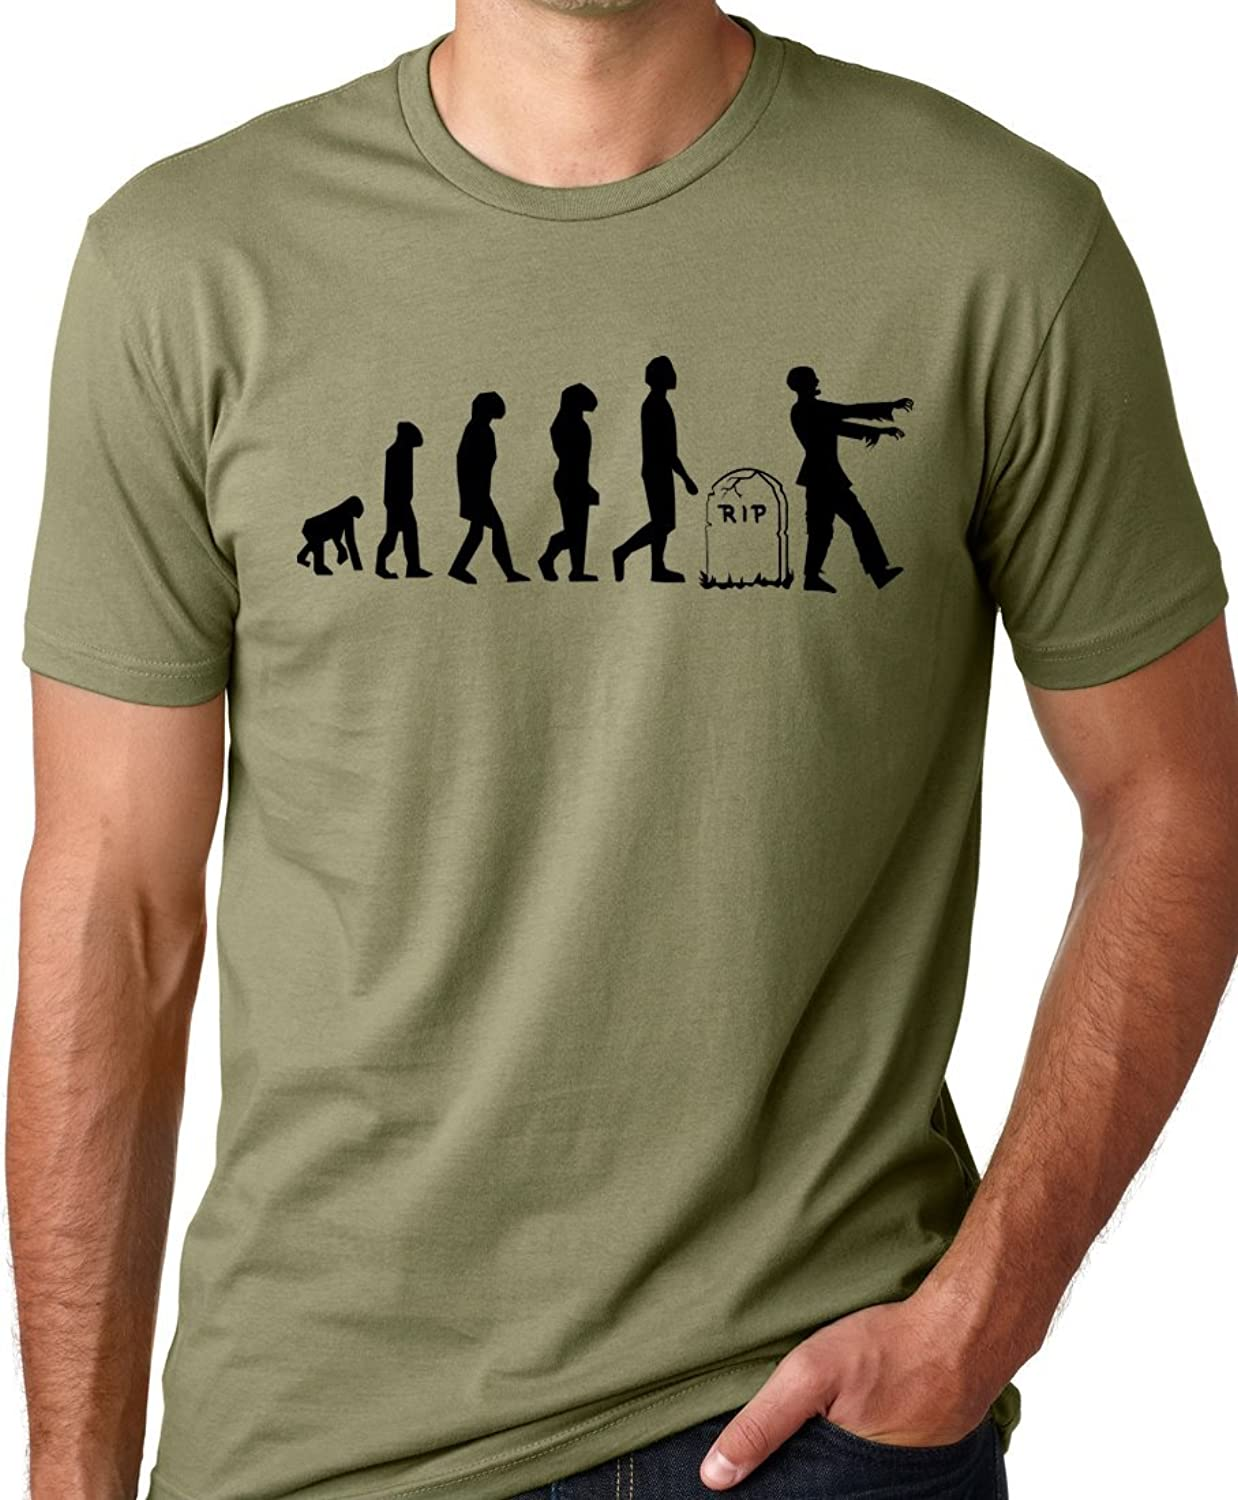 Amazon.com: Zombie Evolution Funny T-Shirt Humor tee: Clothing